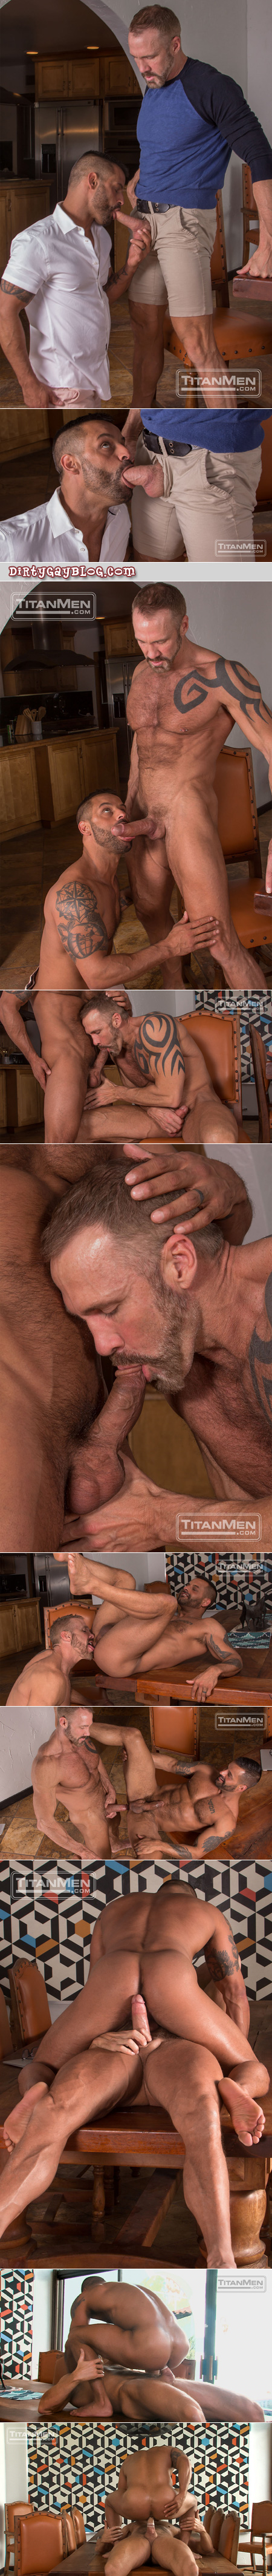 Tattooed muscle Daddies sucking their cocks and getting ready for gay anal sex.